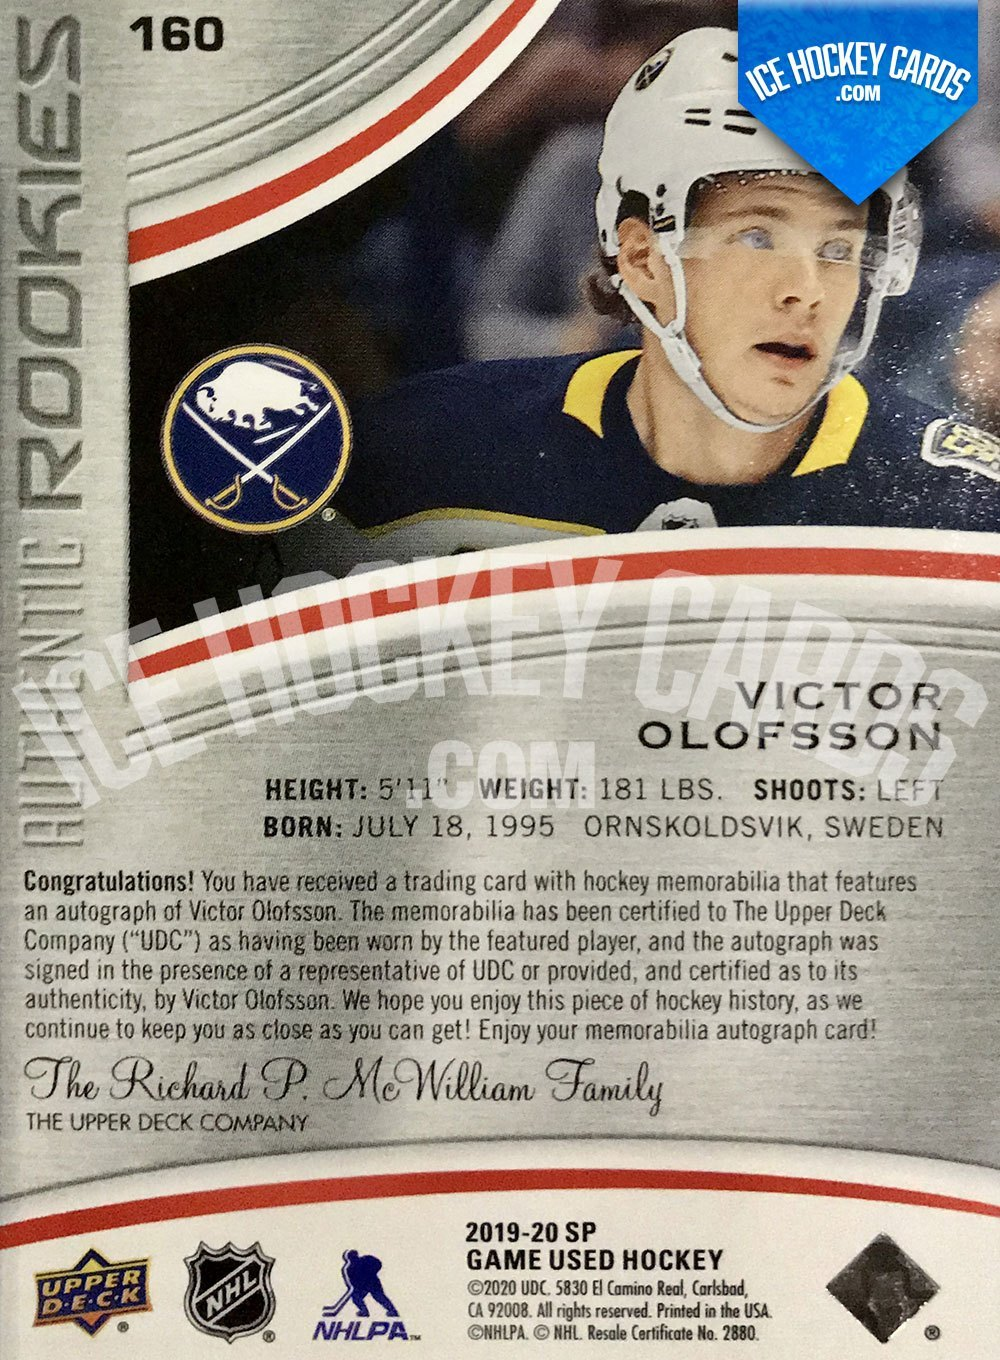 Upper Deck - SP Game Used 2019-20 - Victor Olofsson Authentic Rookies Auto Patch RC back